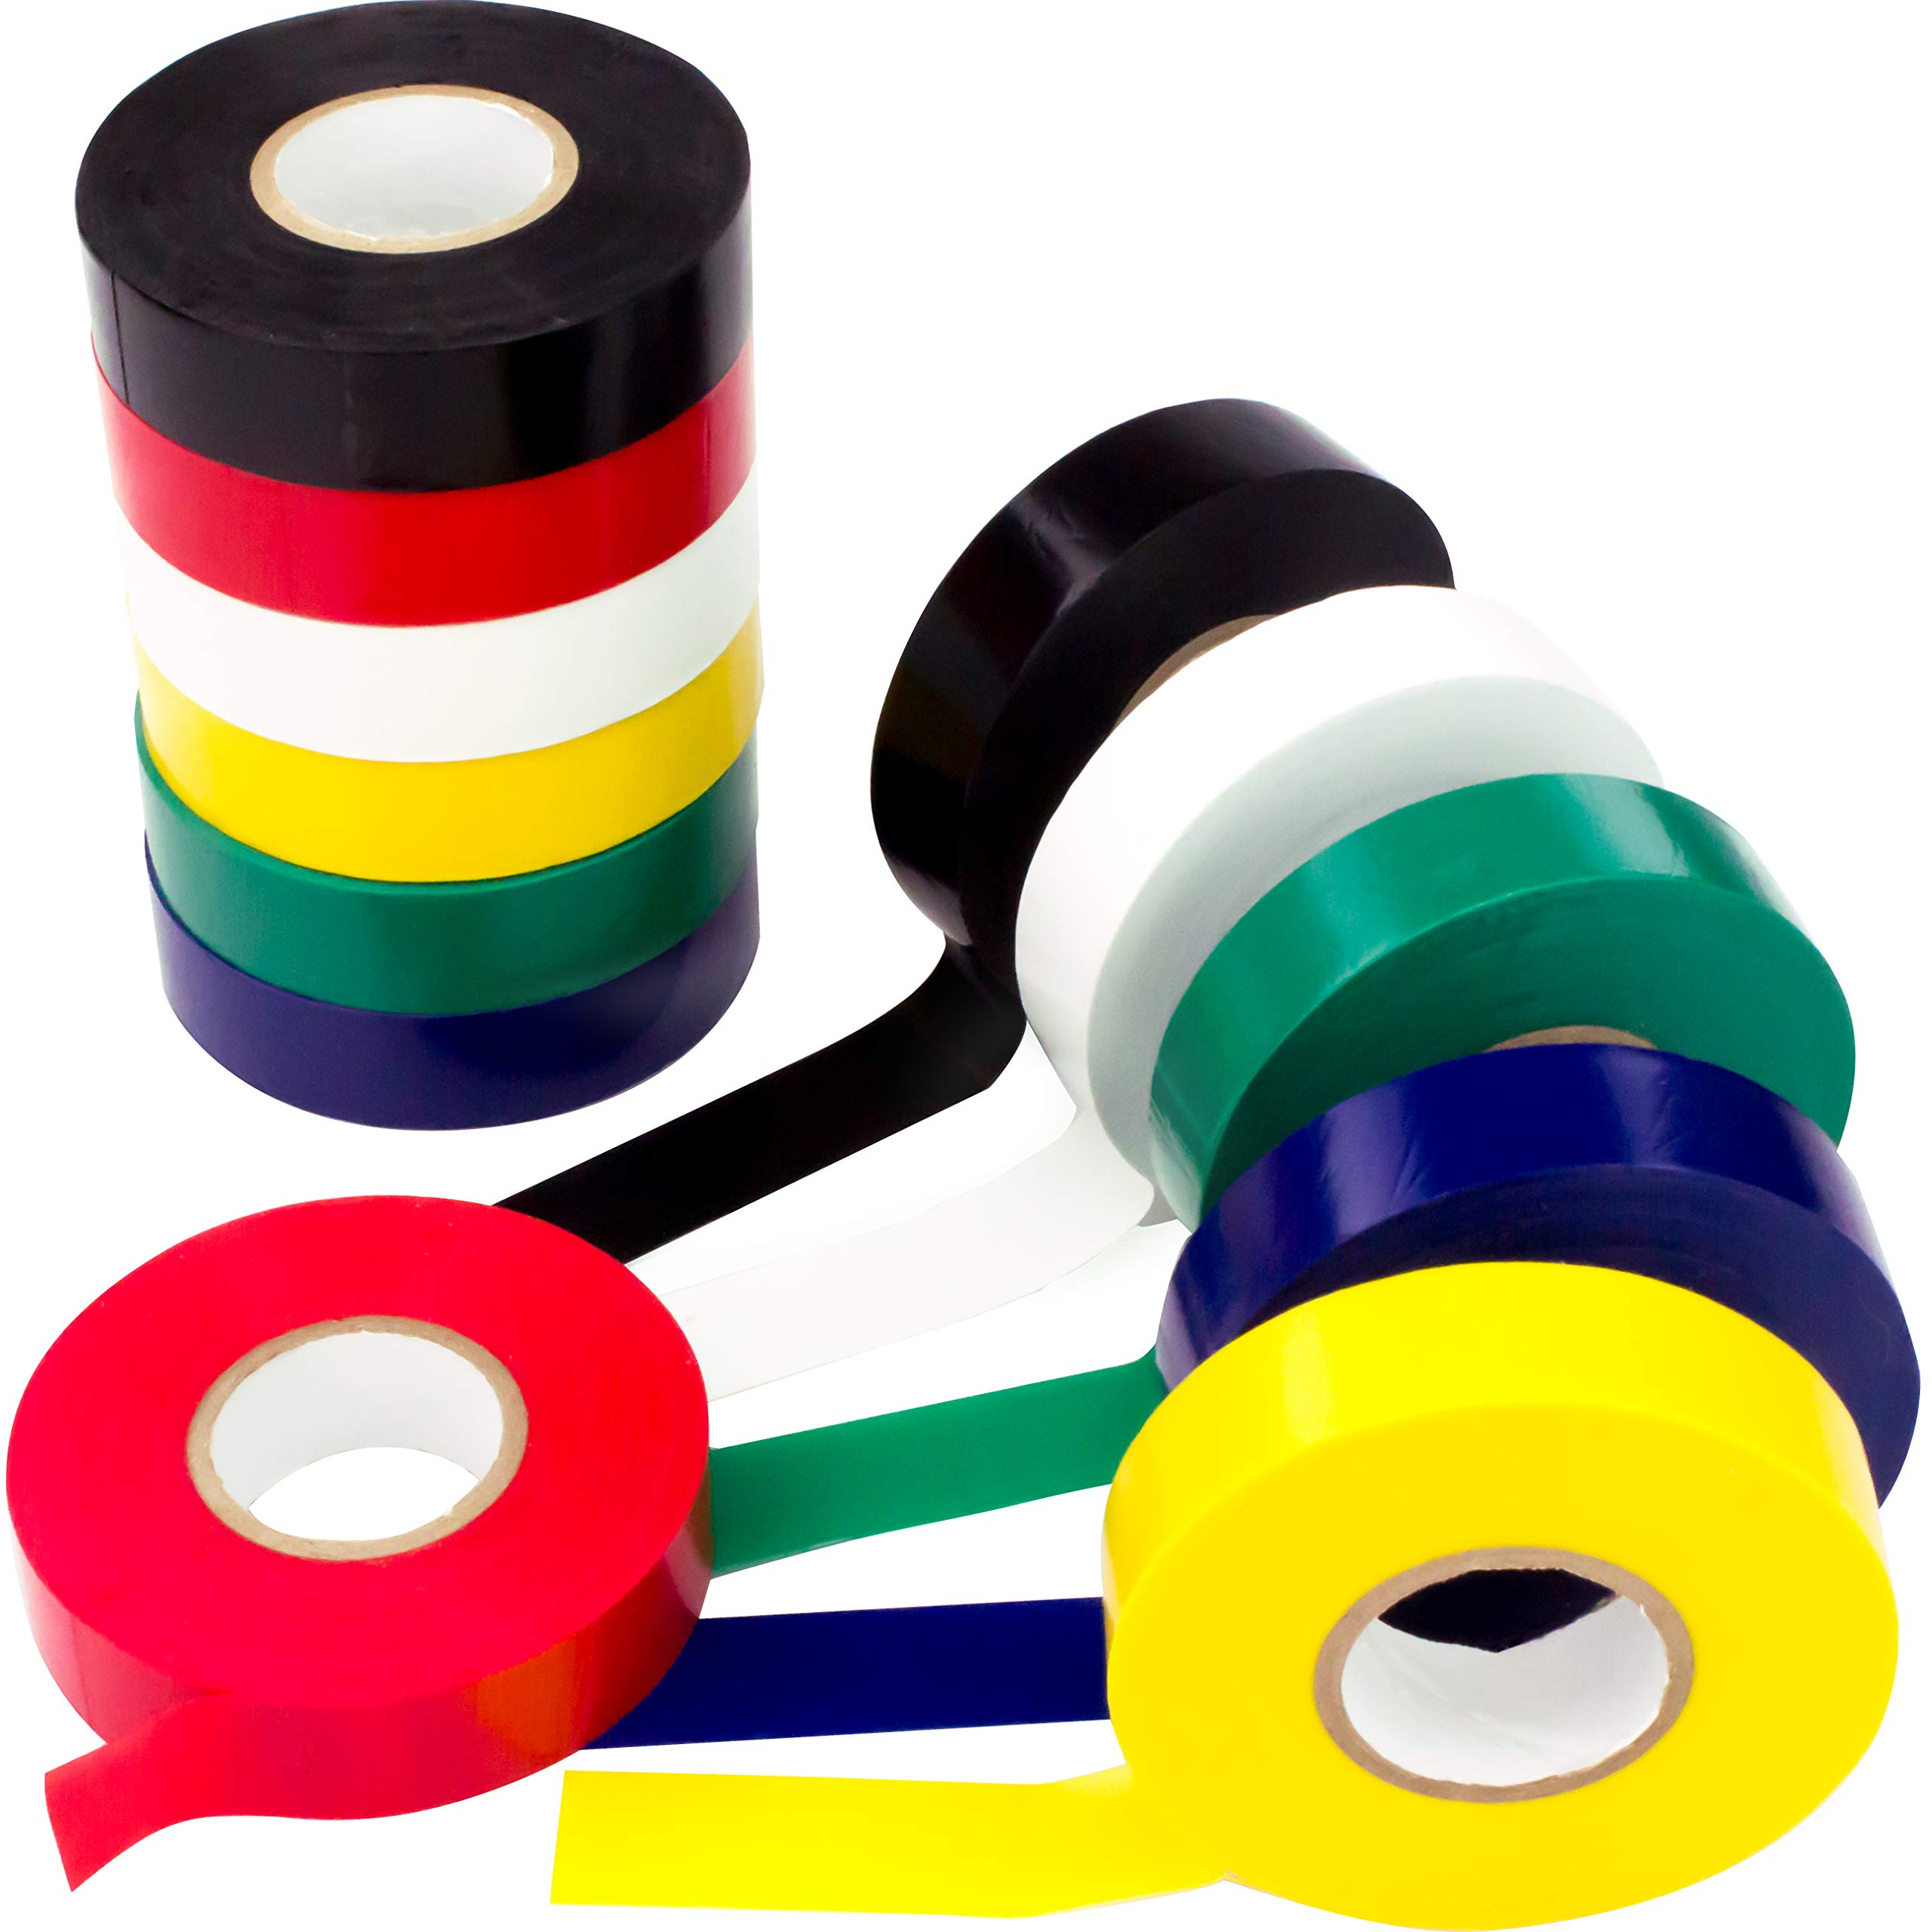 Weather-Resistant Colored Electrical Tape 60 Jumbo Roll 12 Pack by Nova Supply. Color Code Your Electric Wiring Safely with Indoor/Outdoor PVC Vinyl, UL Listed to 600V, for a Variety of Taping Needs by Nova